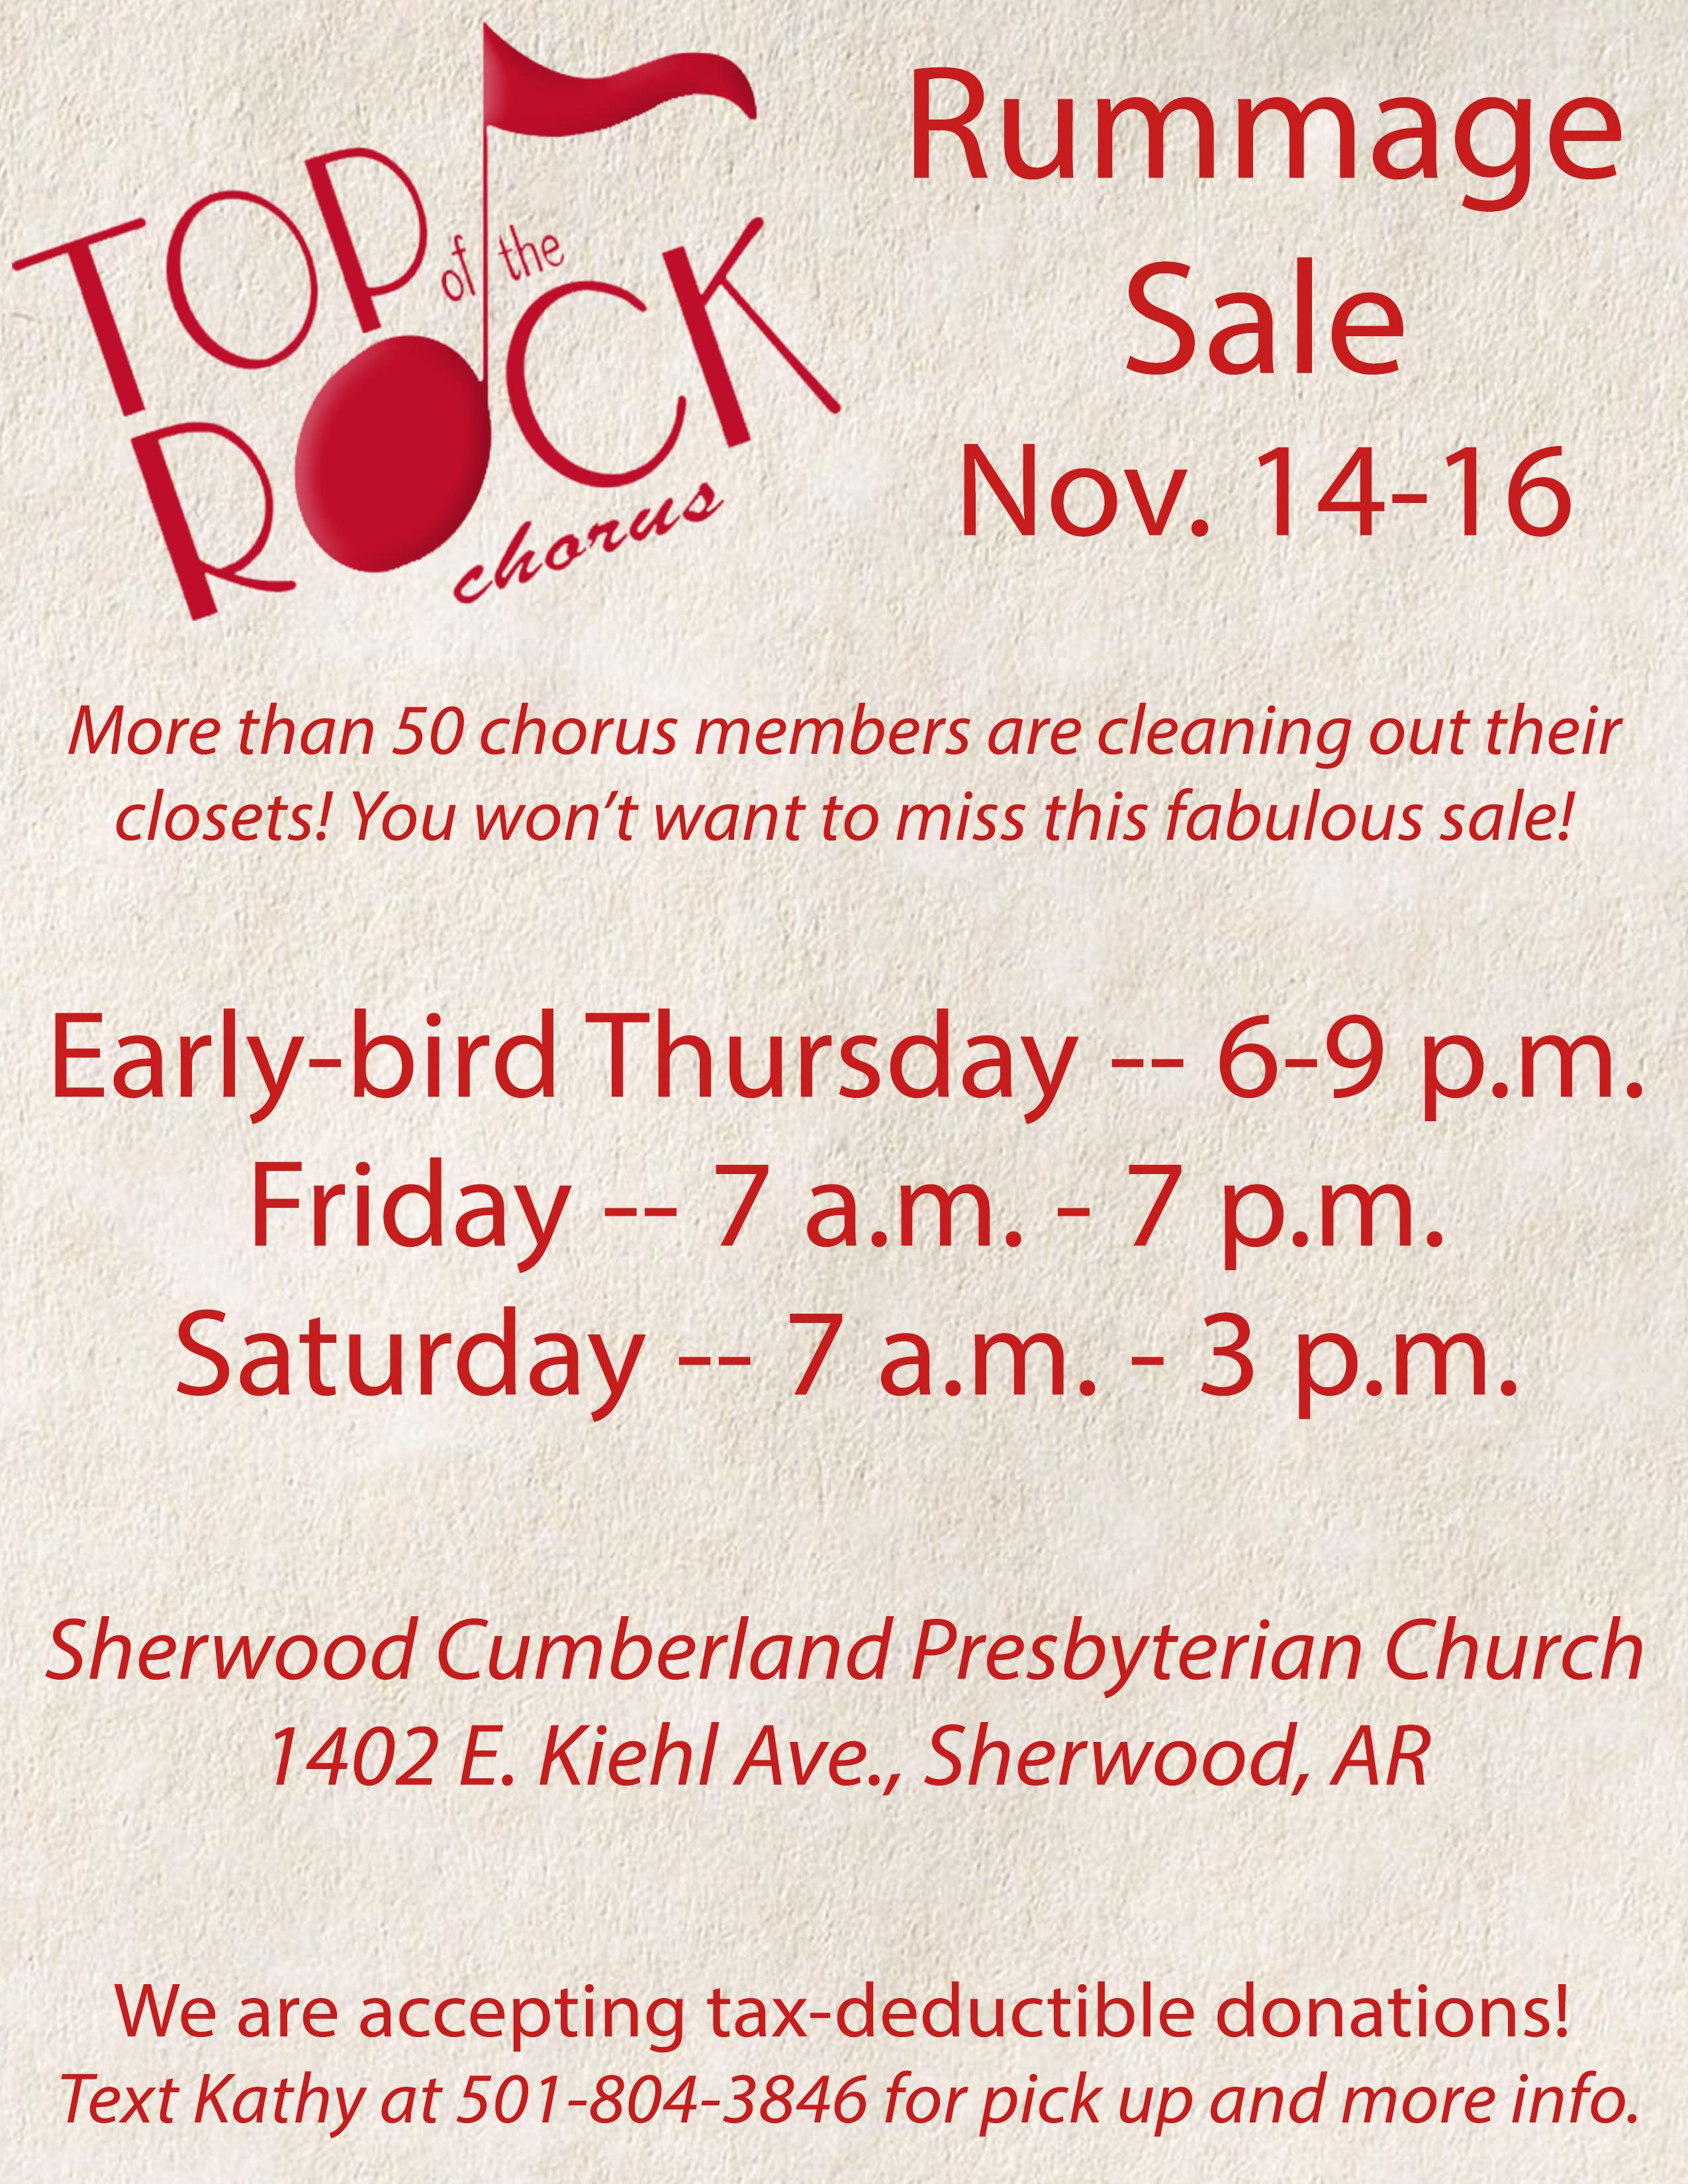 Top of the Rock Rummage Sale Nov. 14-16